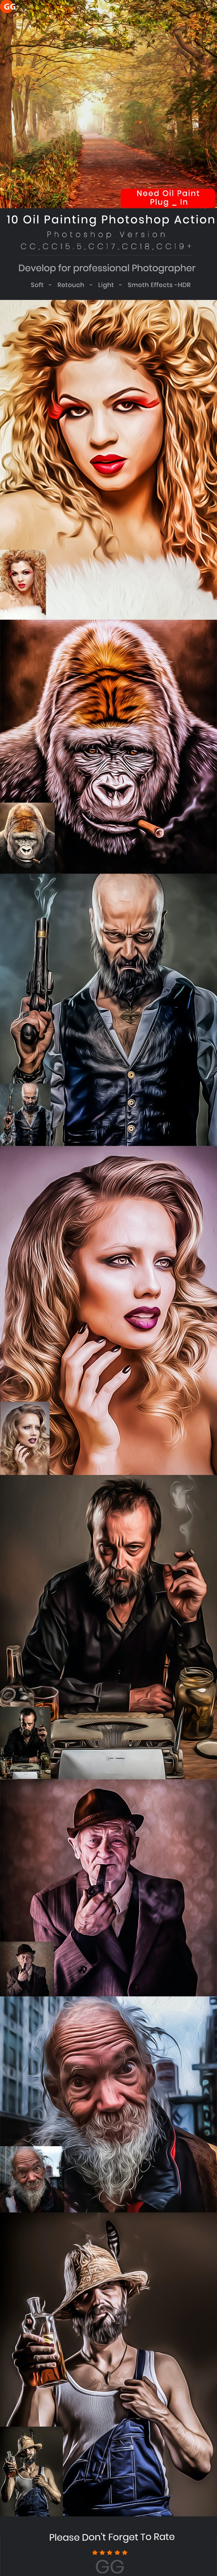 10 Oil Painting Photoshop Action - Photo Effects Actions